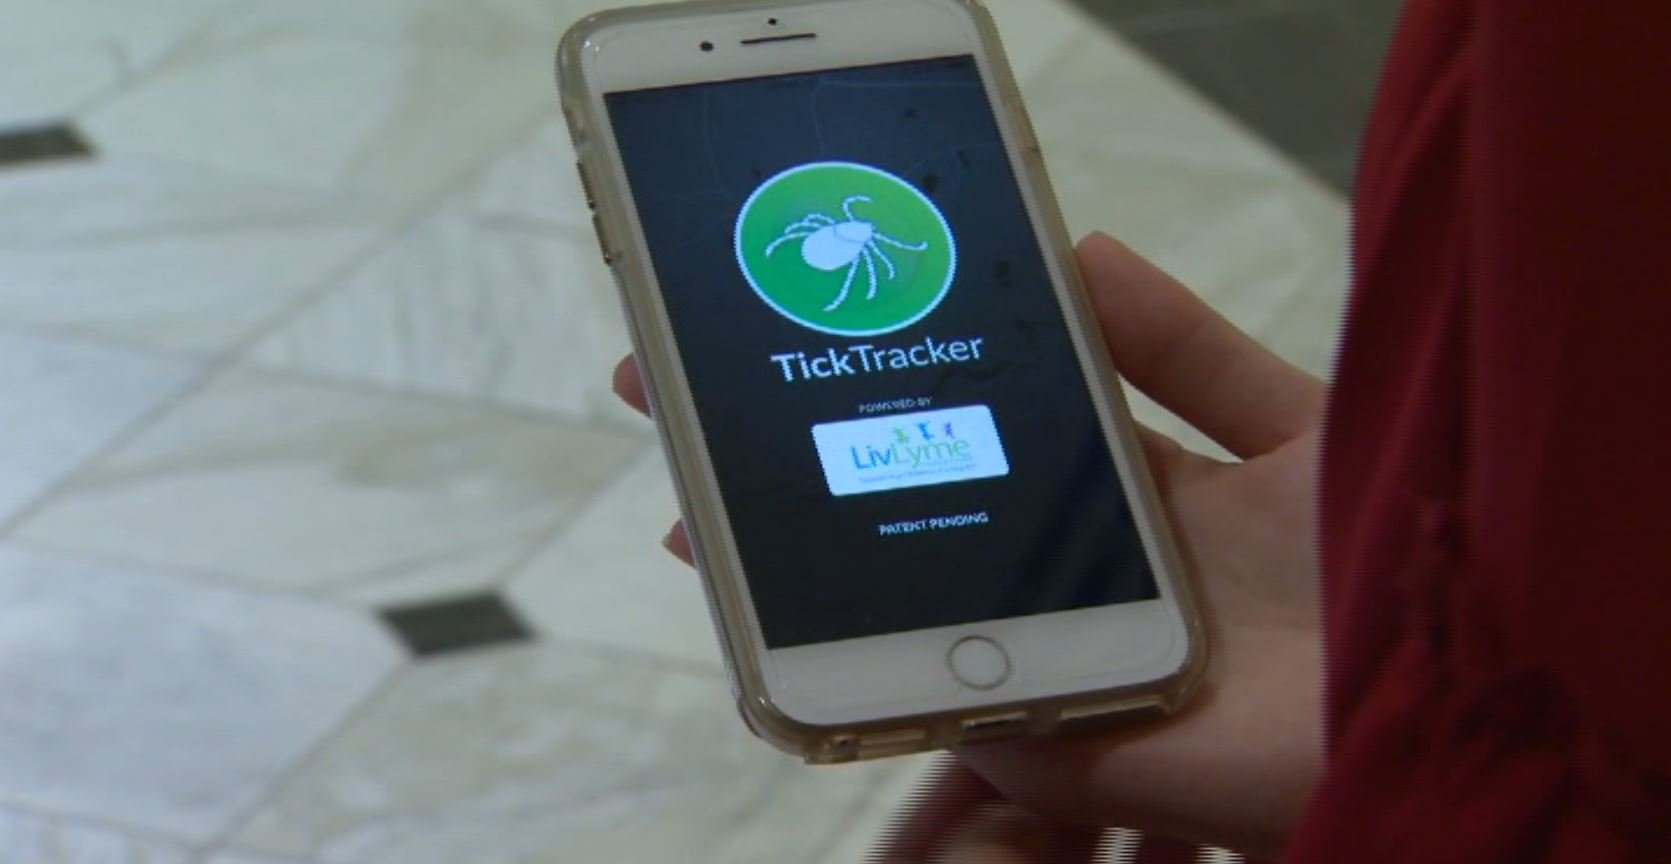 A Colorado teenager with Lyme disease is helping others fight the condition through technology and legislation. (WBAL/CNN)